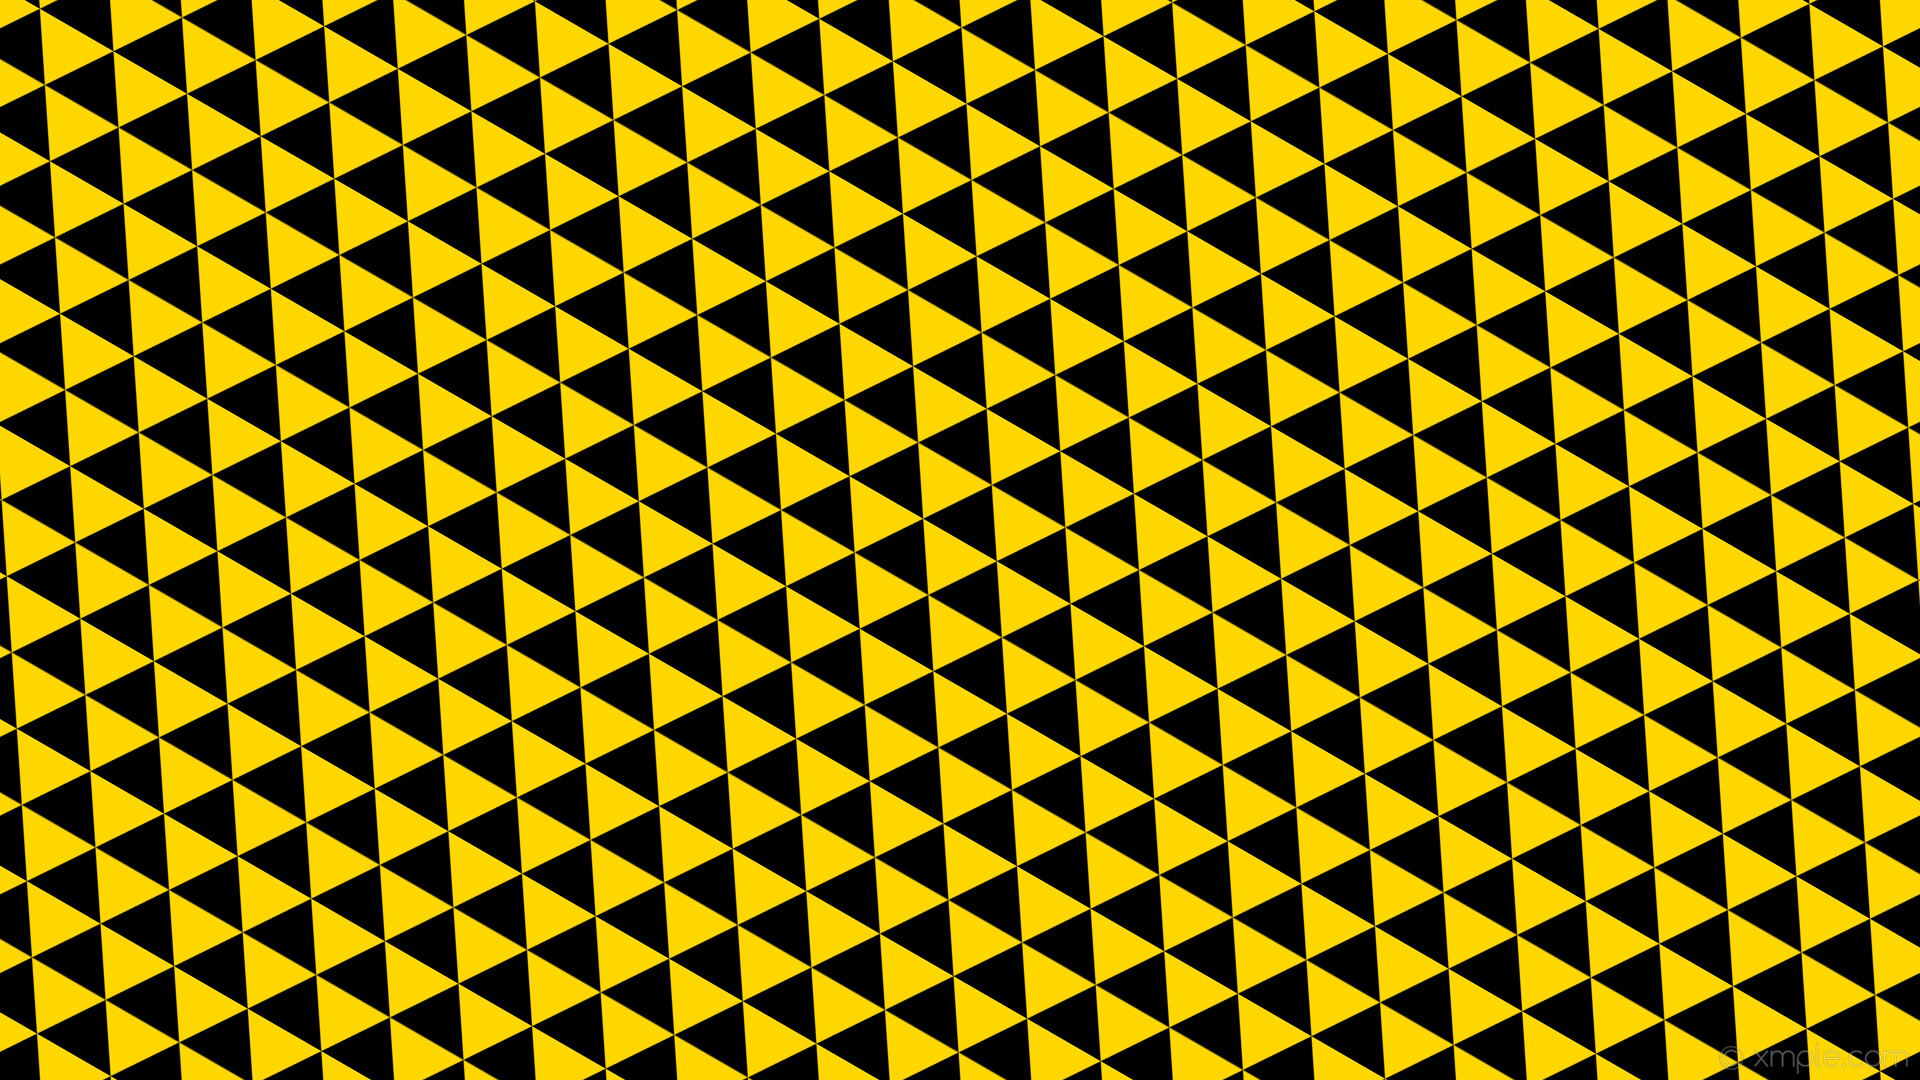 1920x1080 wallpaper black triangle yellow gold #000000 #ffd700 150° 85px 127px